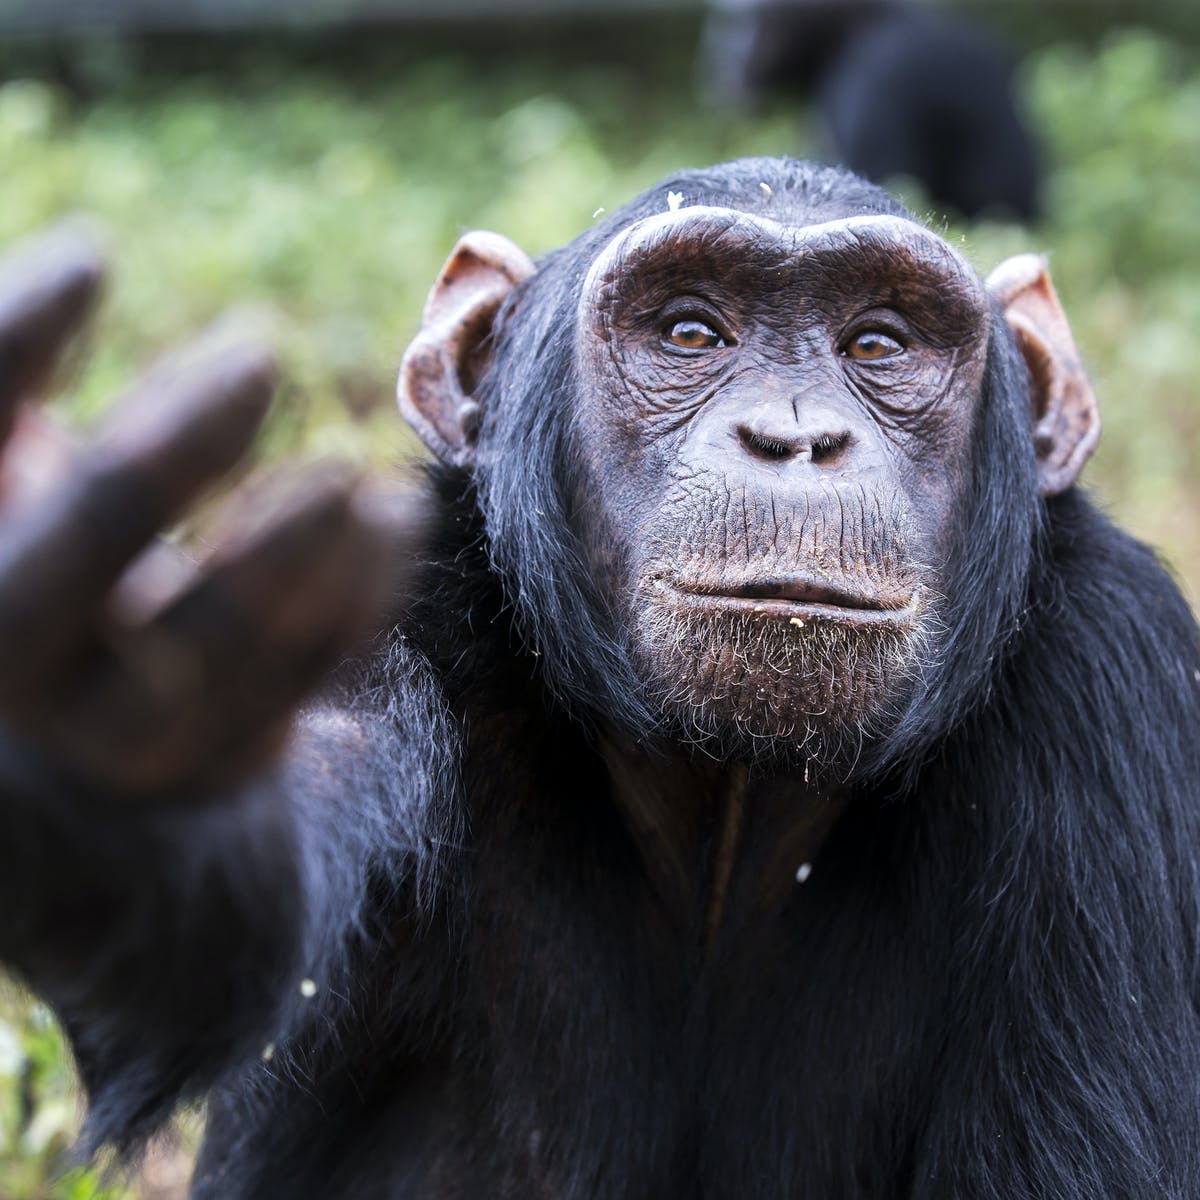 No wonder we are so fascinated by chimps – they remind us of